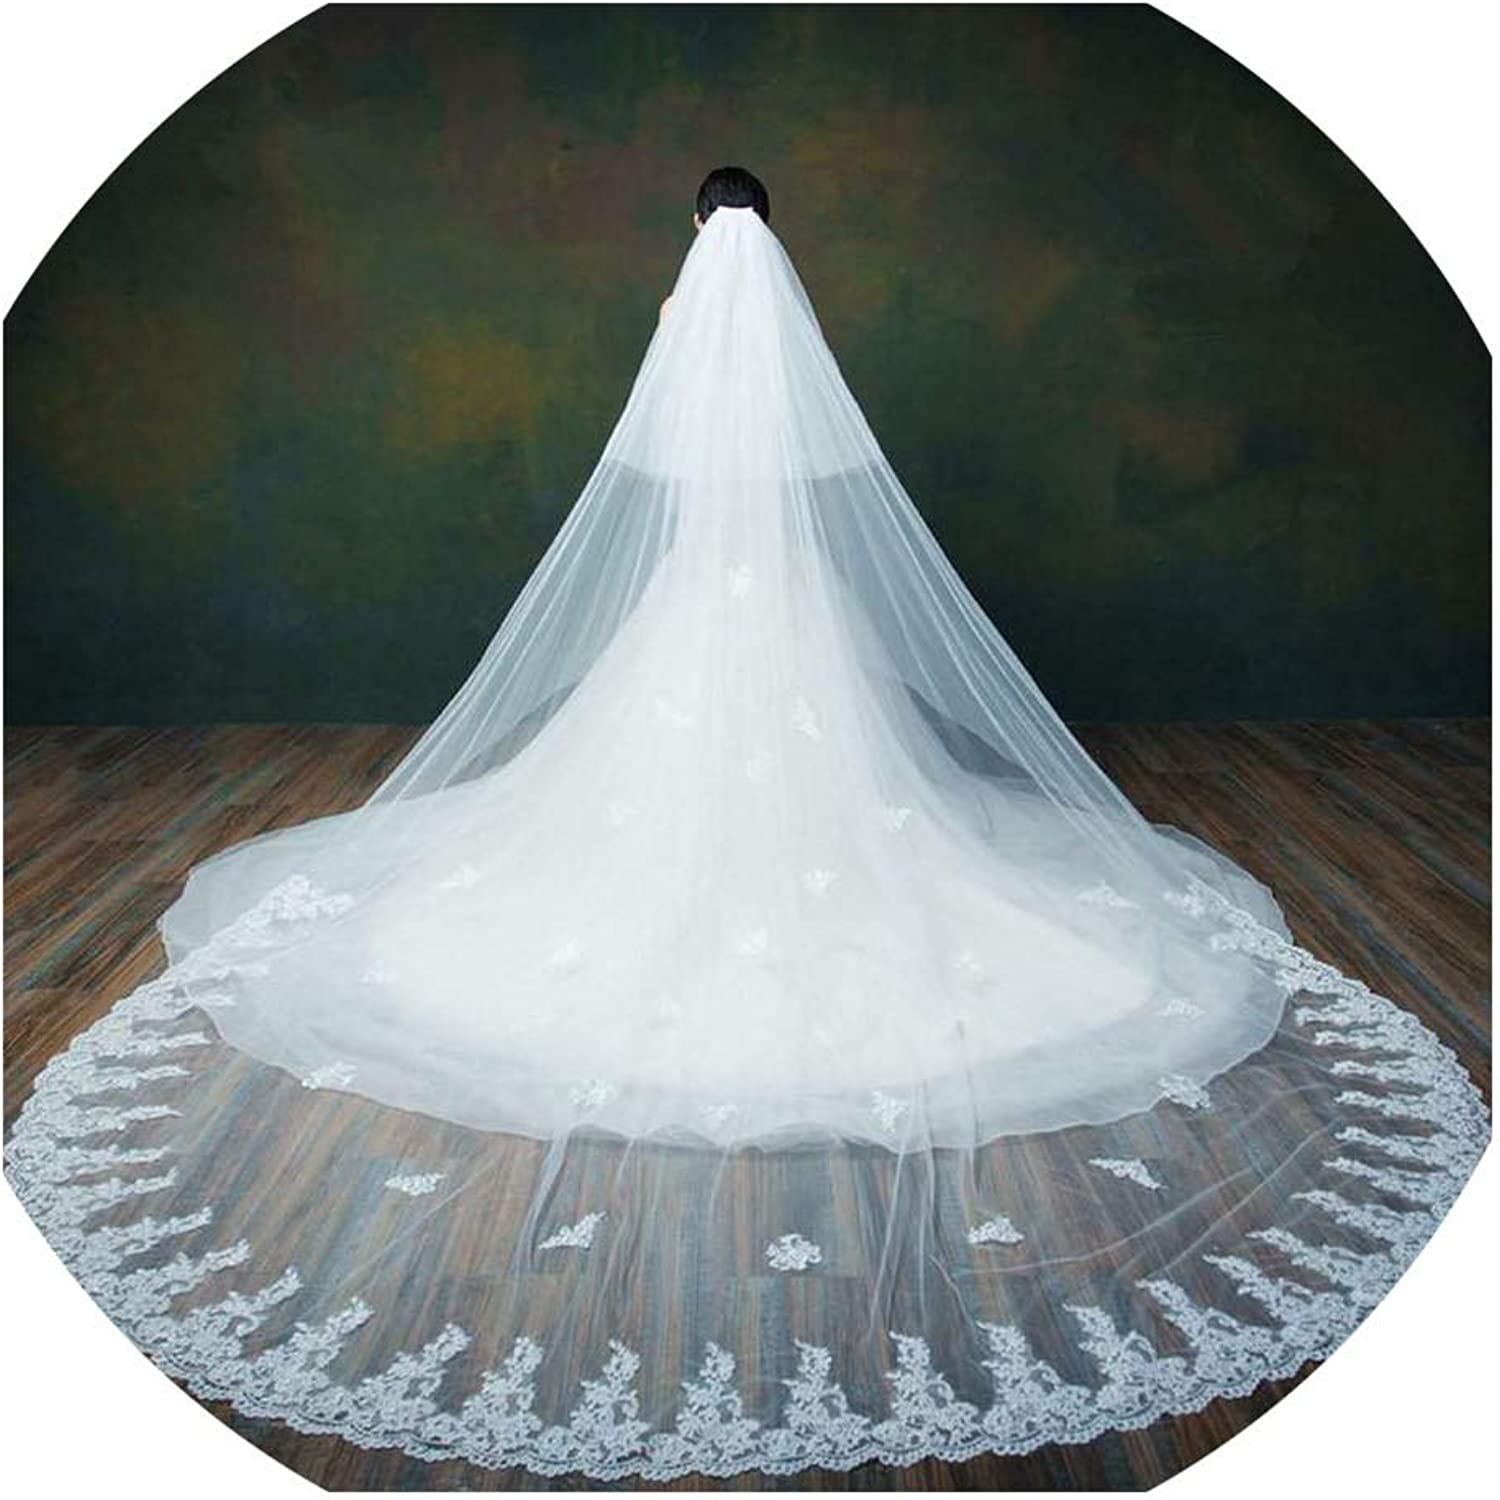 Cathedral Wedding Veils Lace Edge Appliqued TwoLayer Bridal Veils Ber Face Bridal Veil With Free Combs,Ivory,300cm